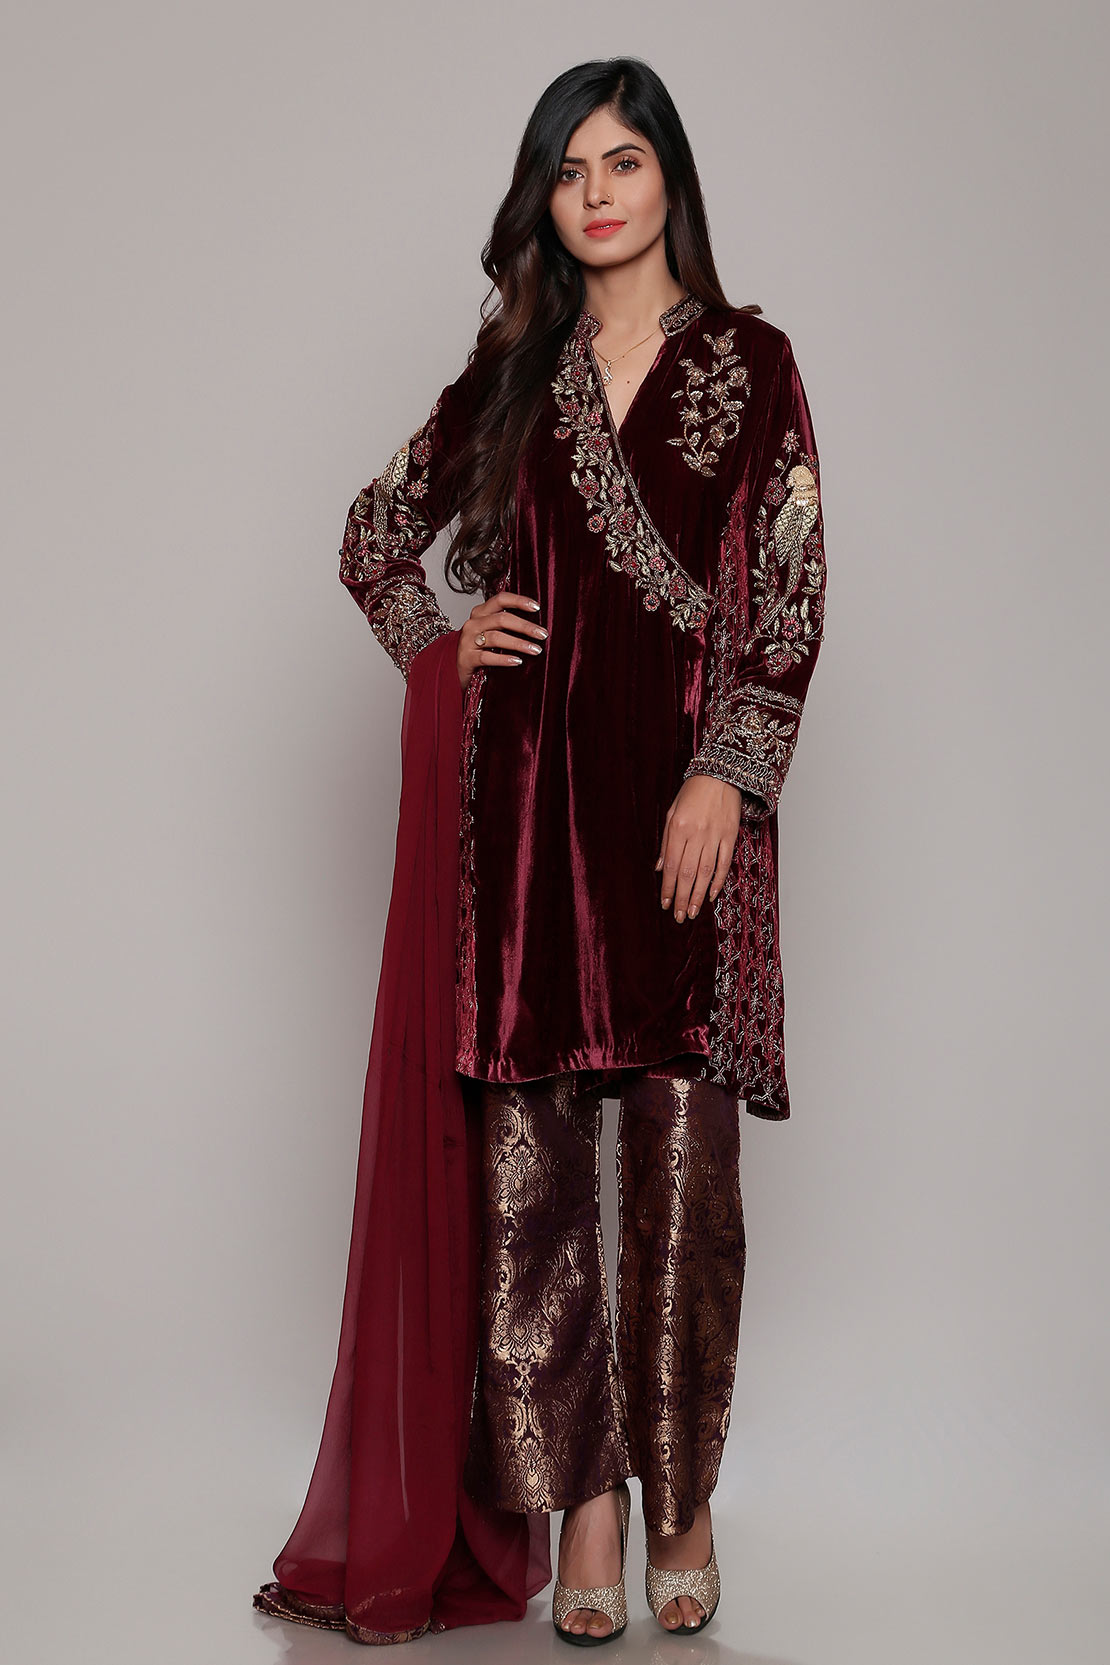 f3a98e29b64 Today we are sharing the Latest Women Best Winter Dresses Designs  Collection 2018 by Famous Pakistani Brands.